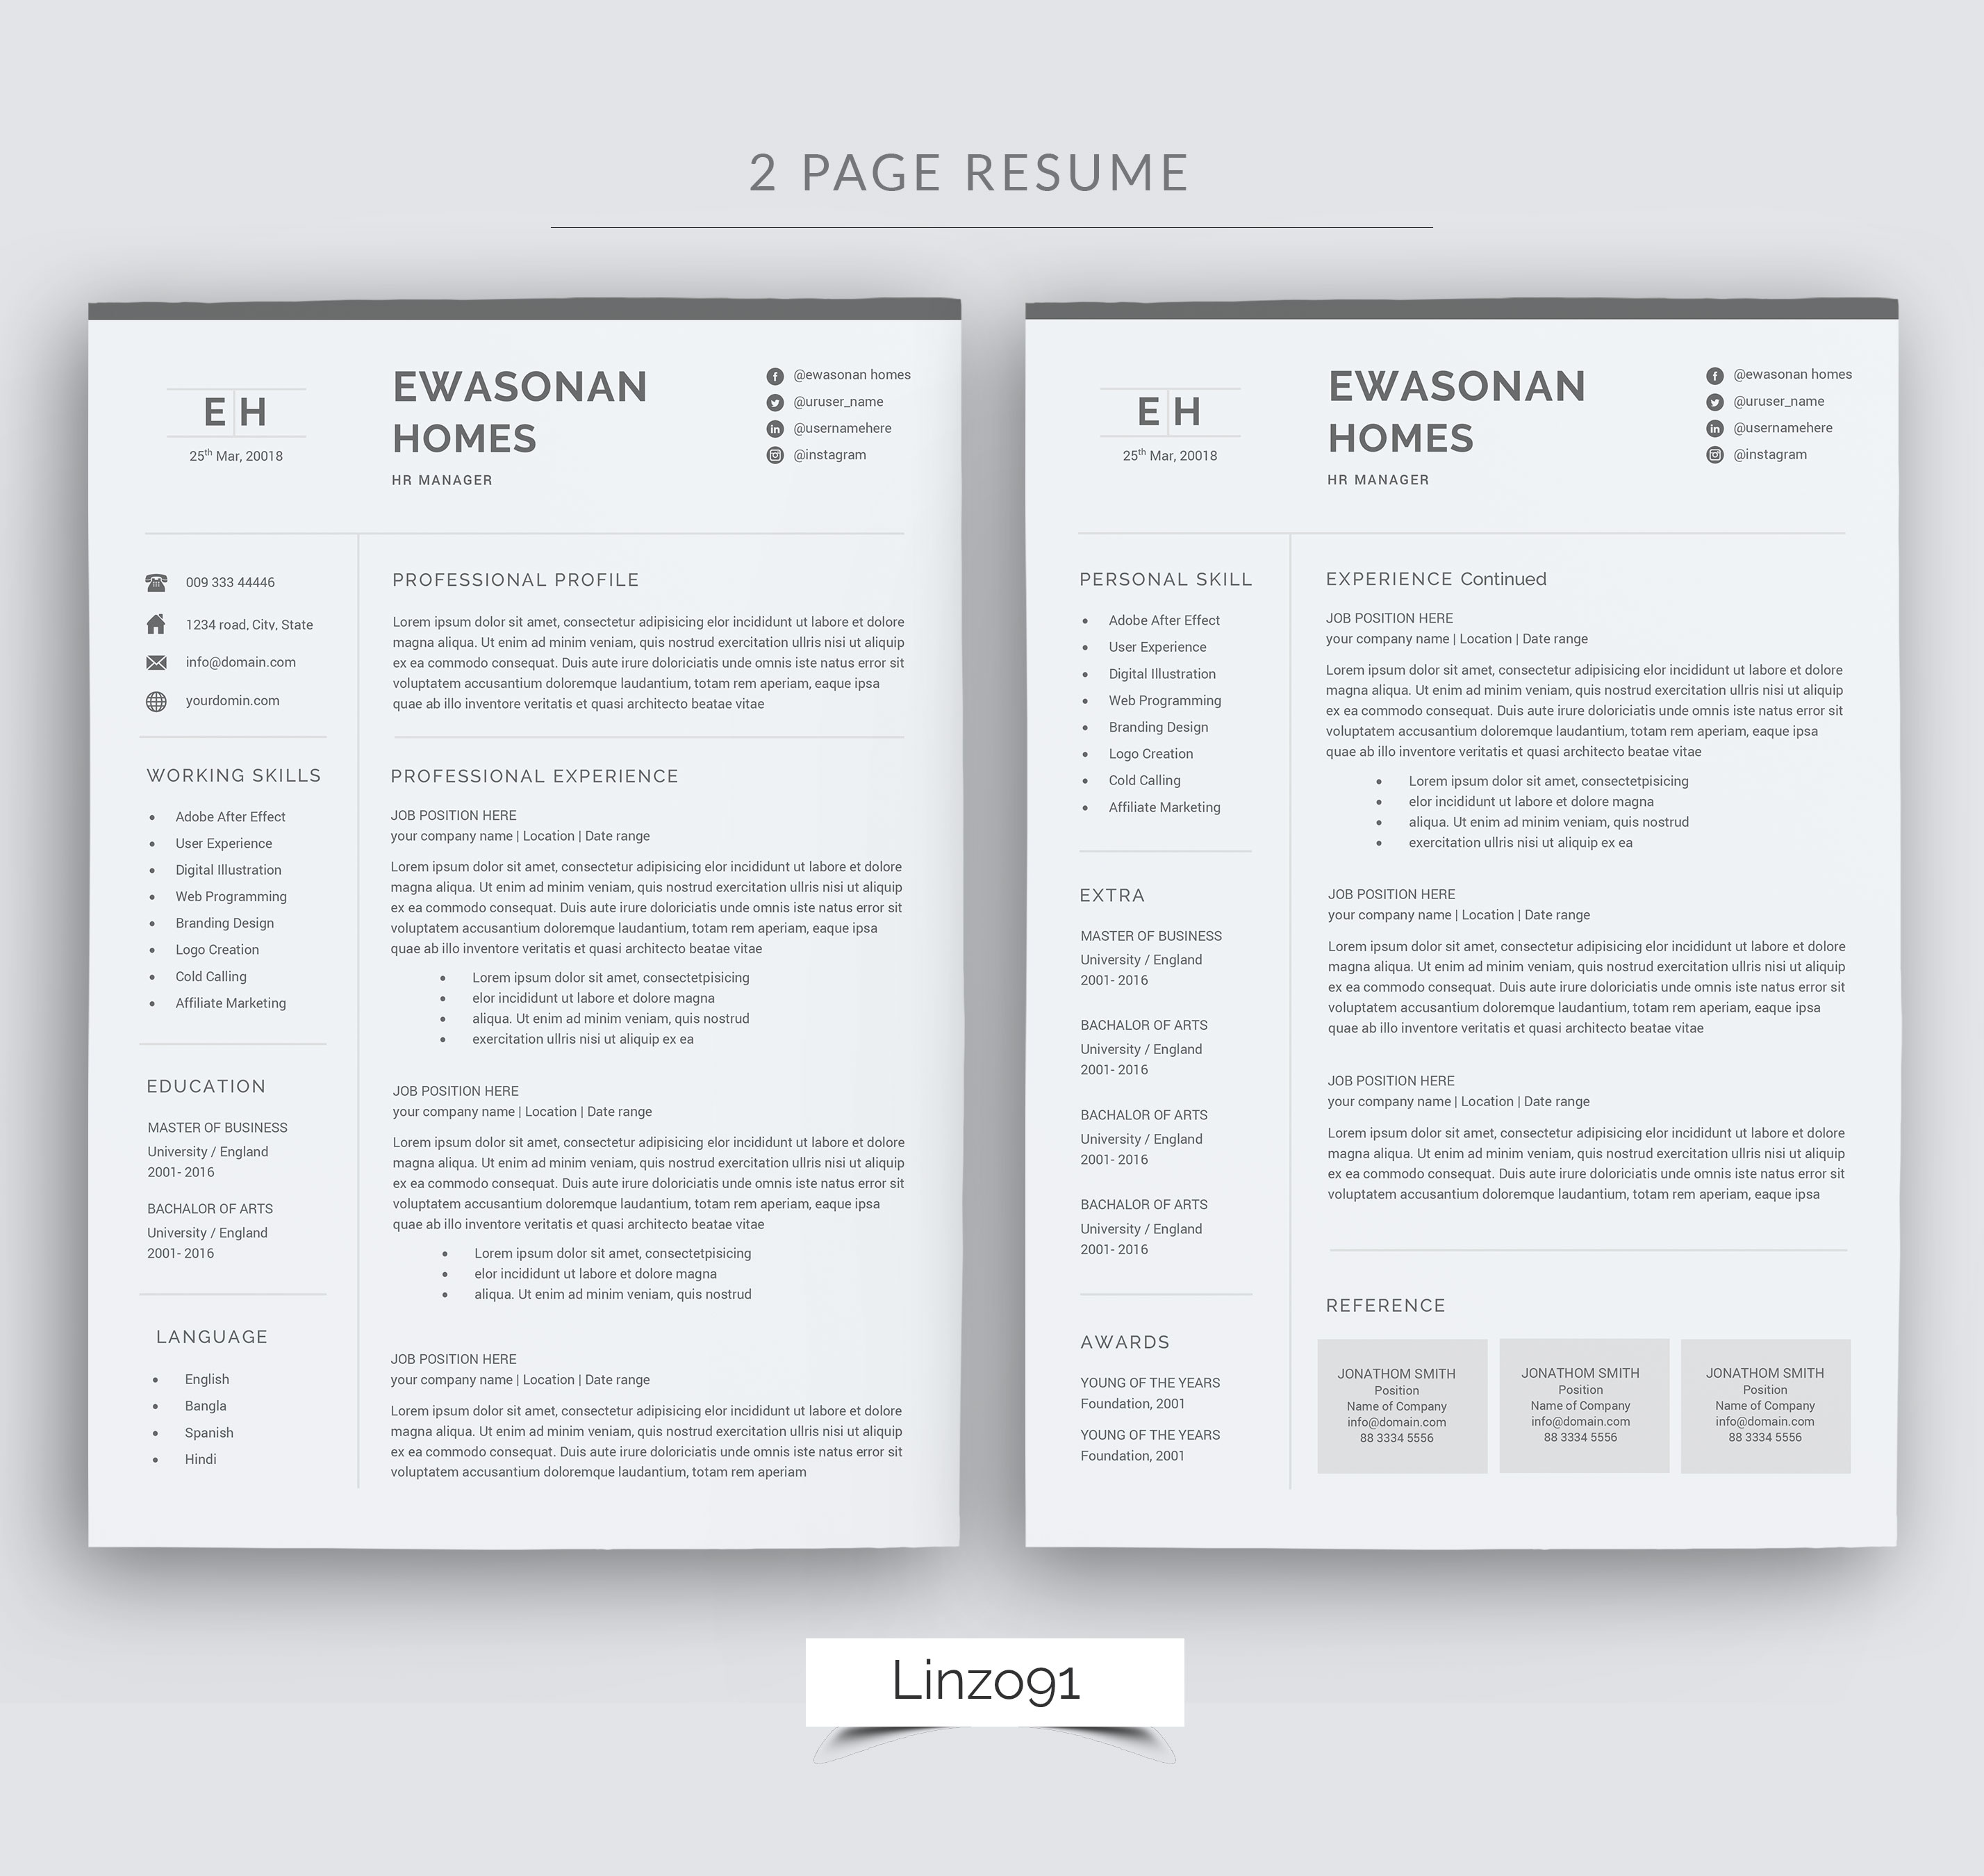 minimal resume 3 pages    cv template for word    two page resume  cover letter in word    teacher